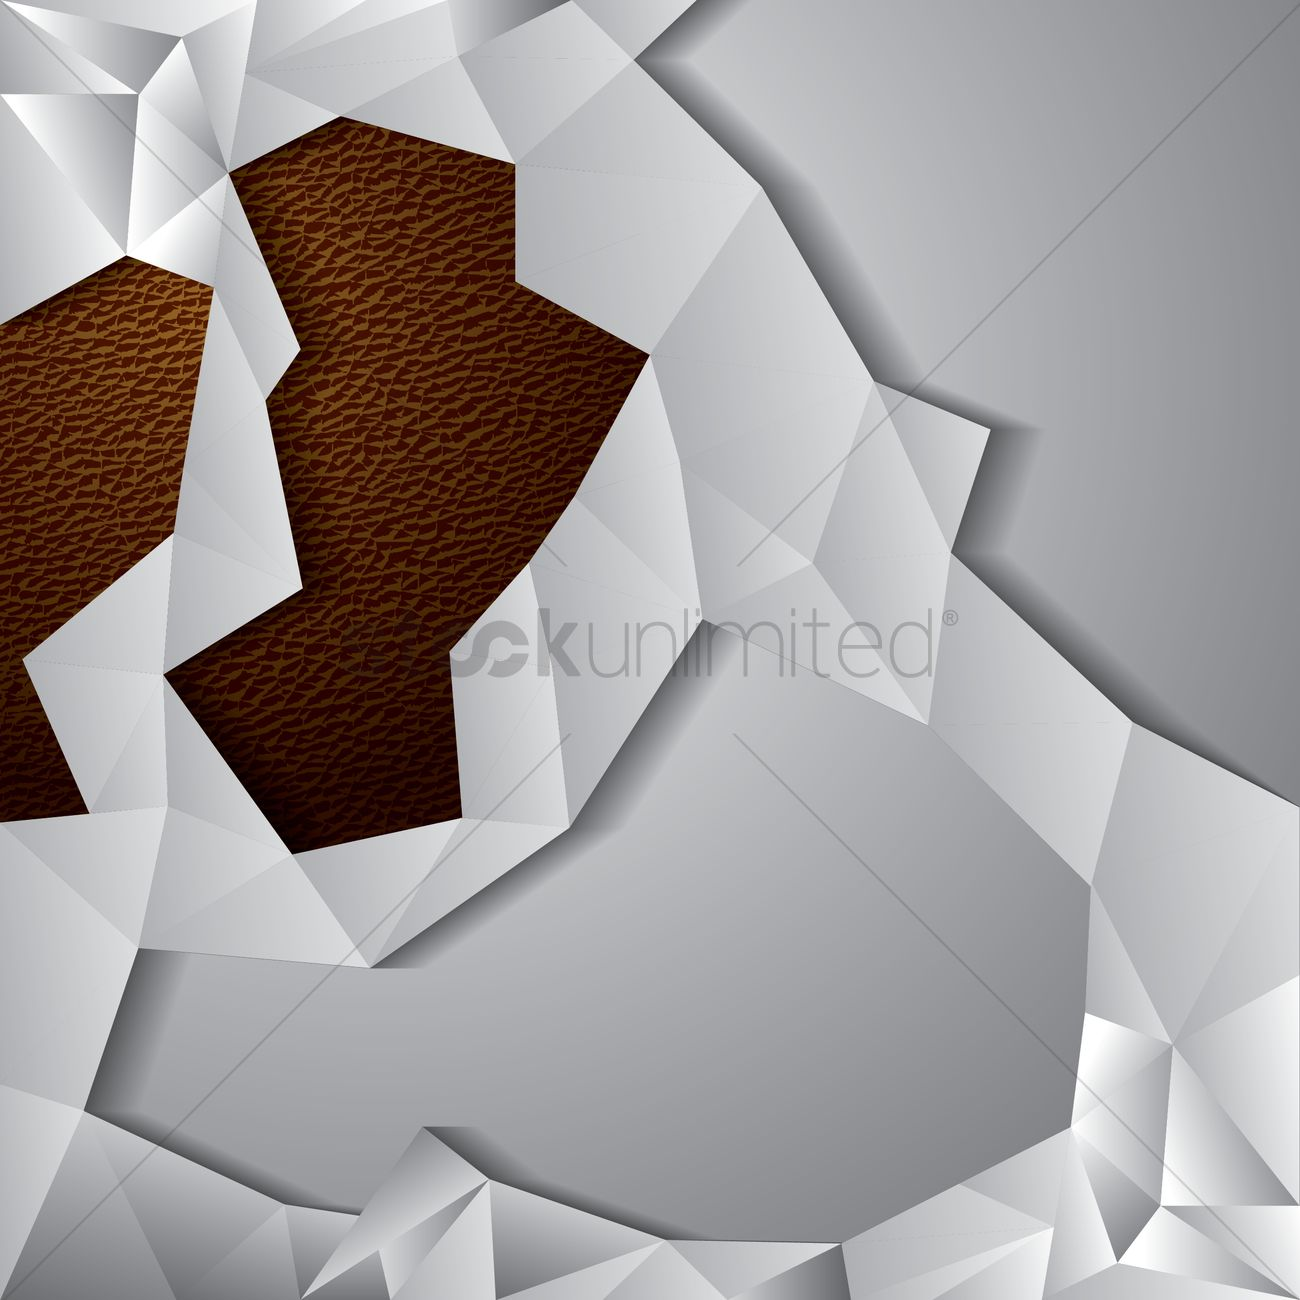 Ripped paper background Vector Image - 1404983   StockUnlimited